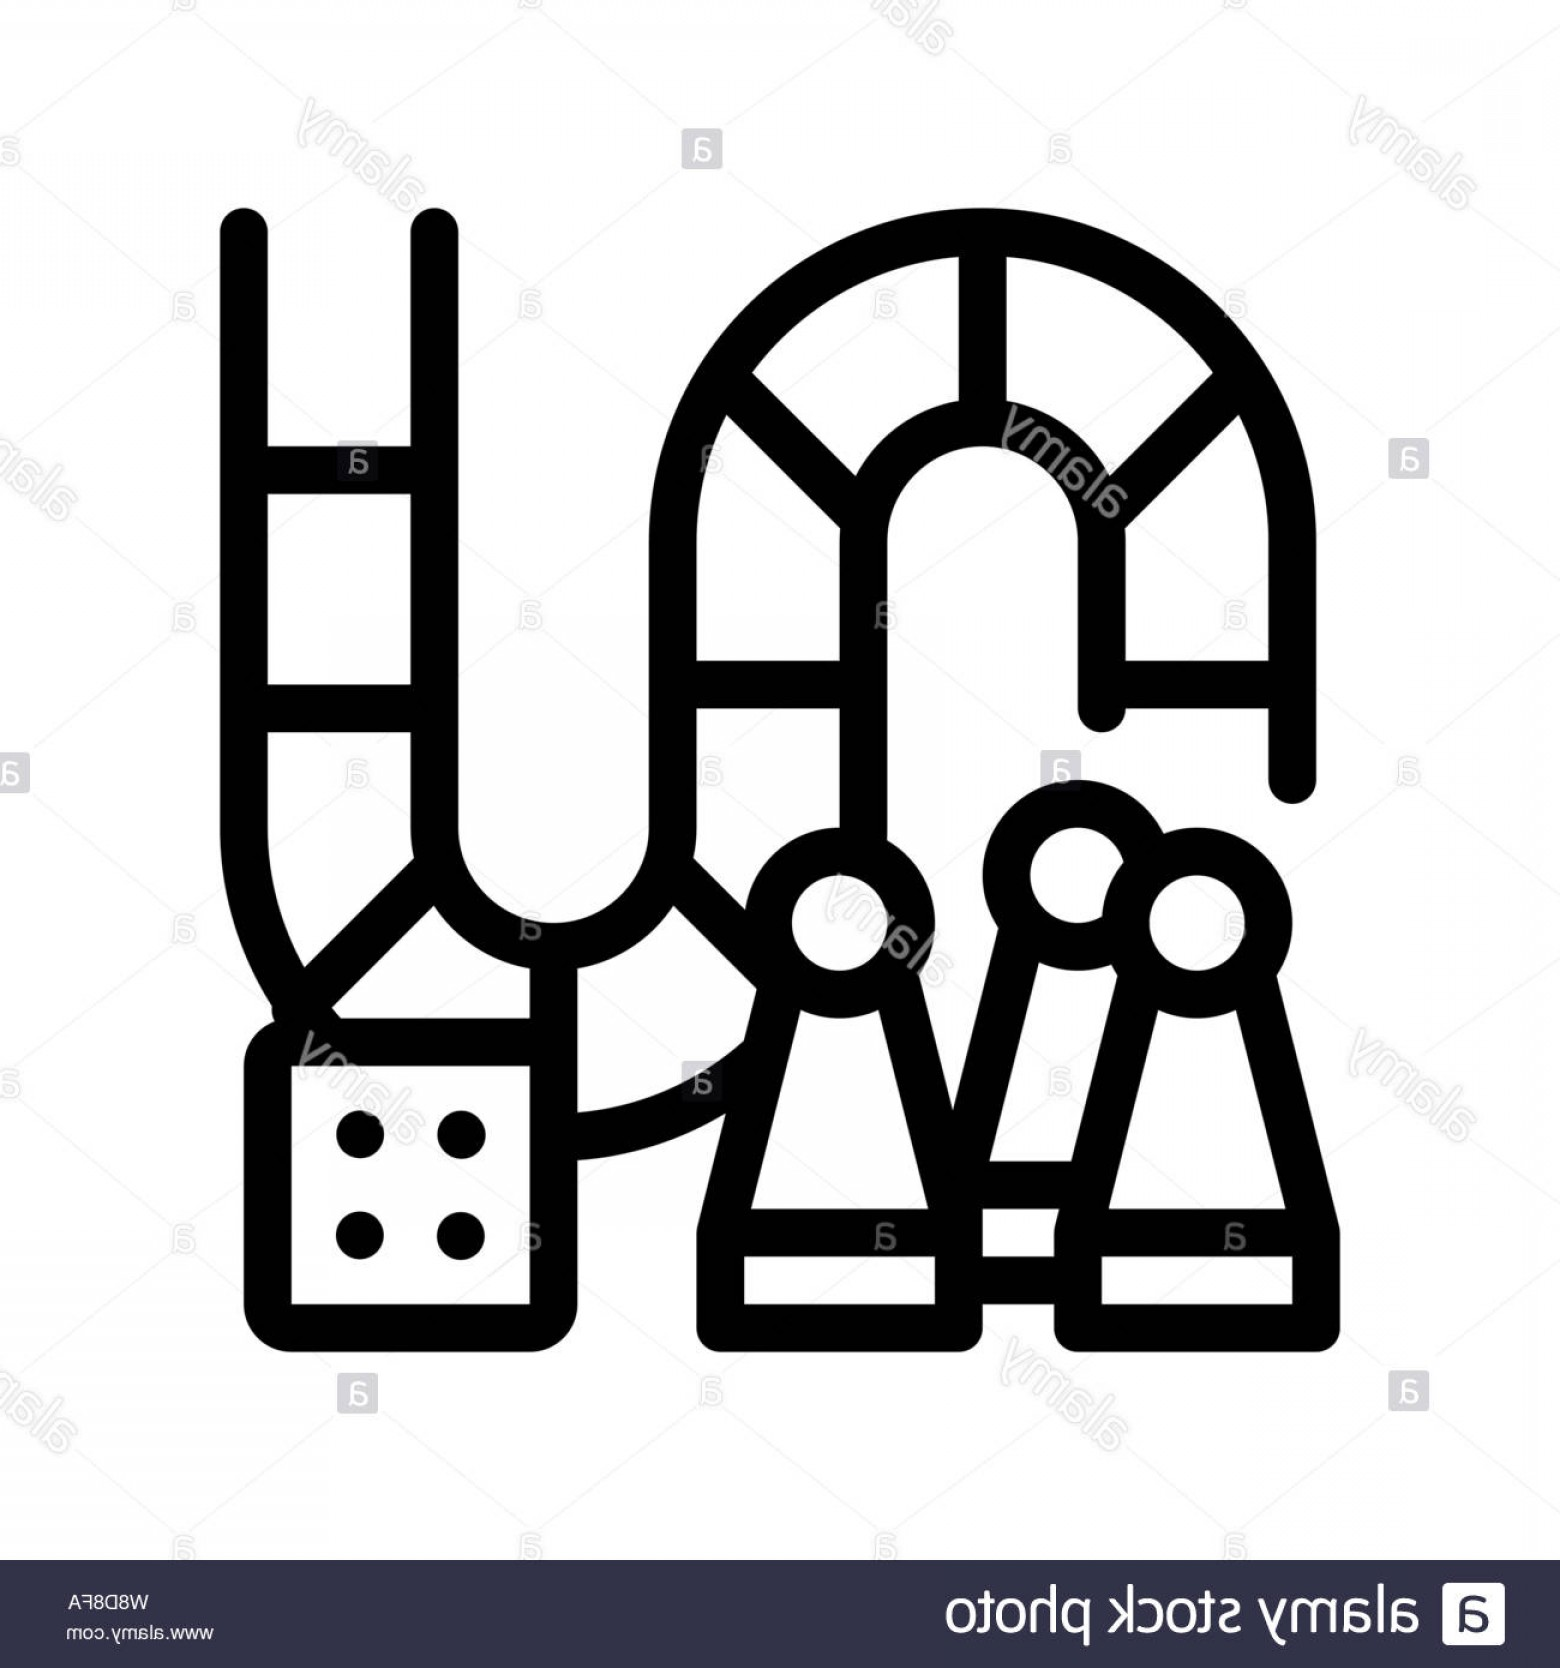 In Icon Stock Vector: Interactive Kids Board Game Vector Thin Line Icon Image